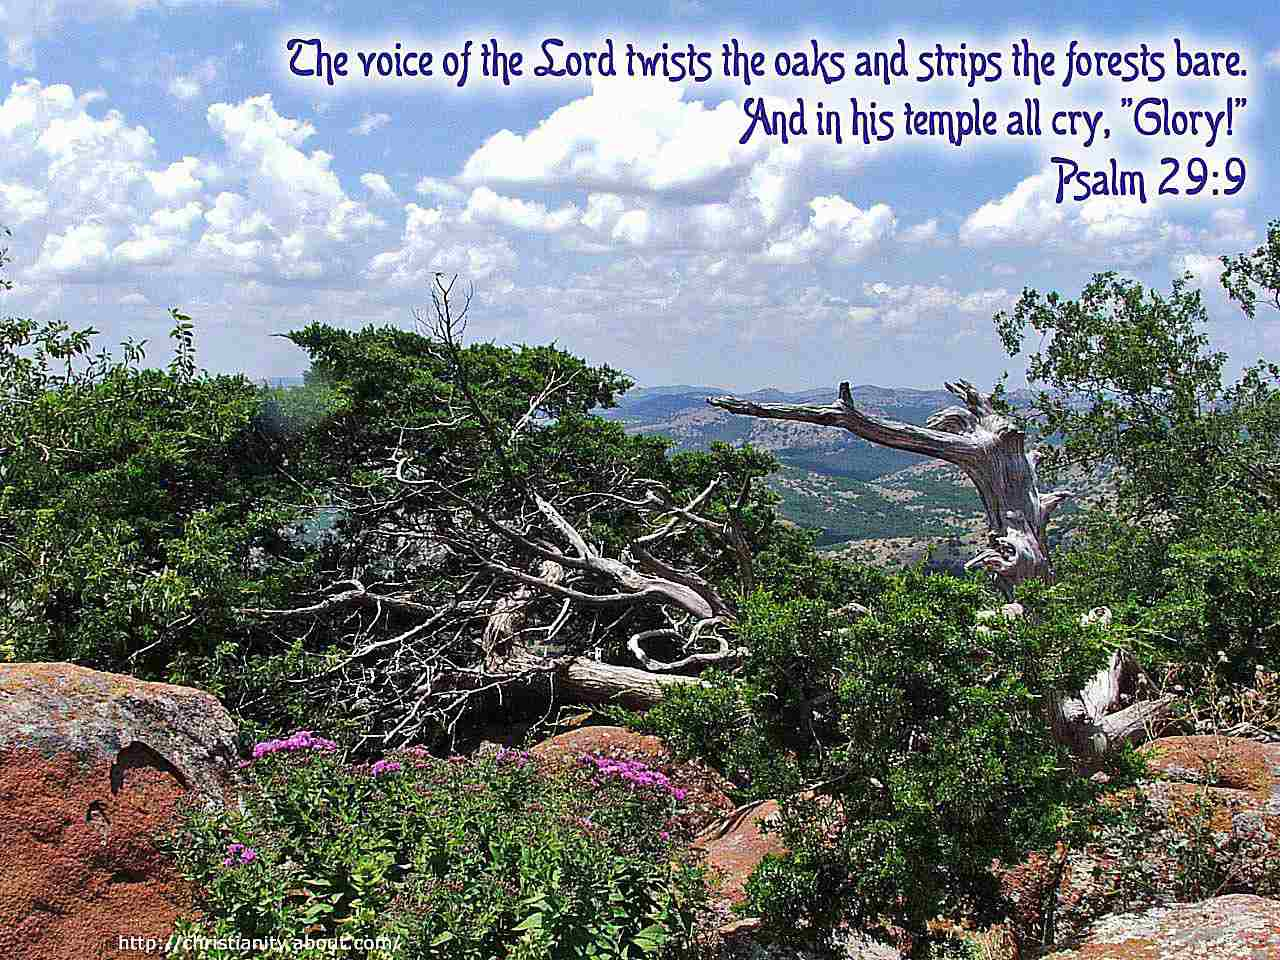 Twisted Trees on Rocky Vista with bible verse